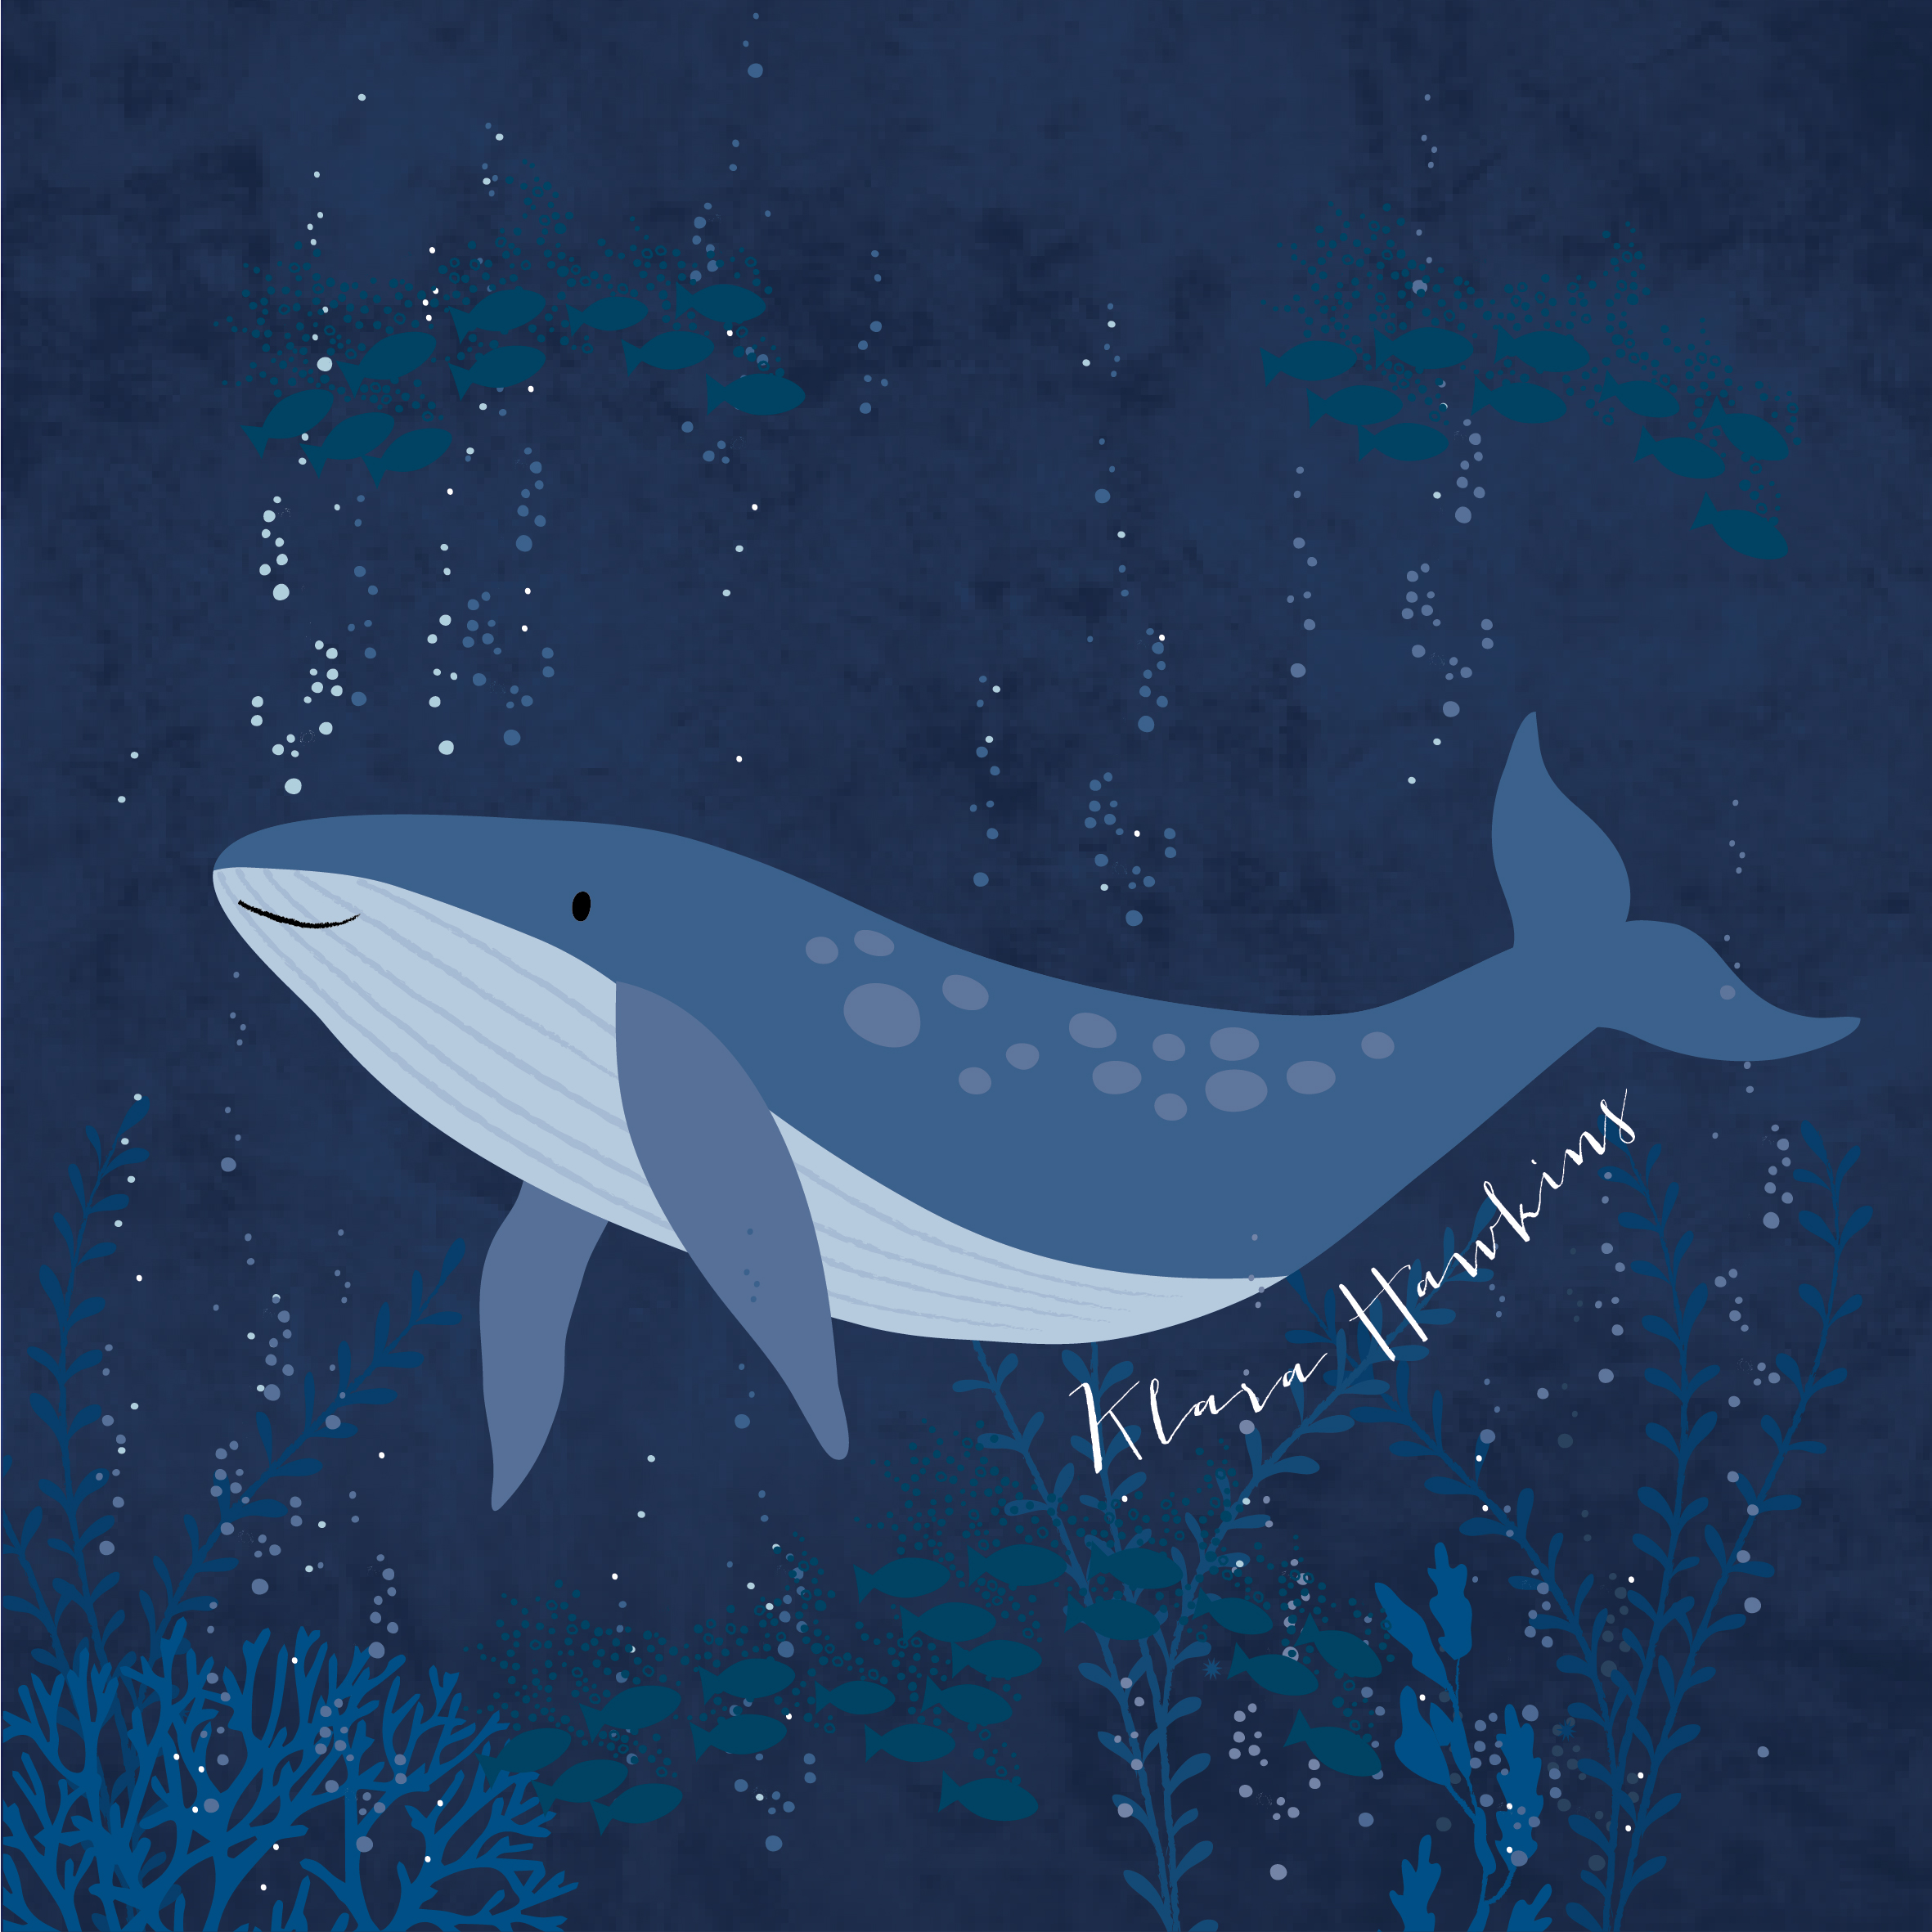 A light blue whale on a dark blue background with sea life such as coral and fish above and below. There are white bubbles coming off the whale and she has a little smile. The artist's signature is written in white under the whale.